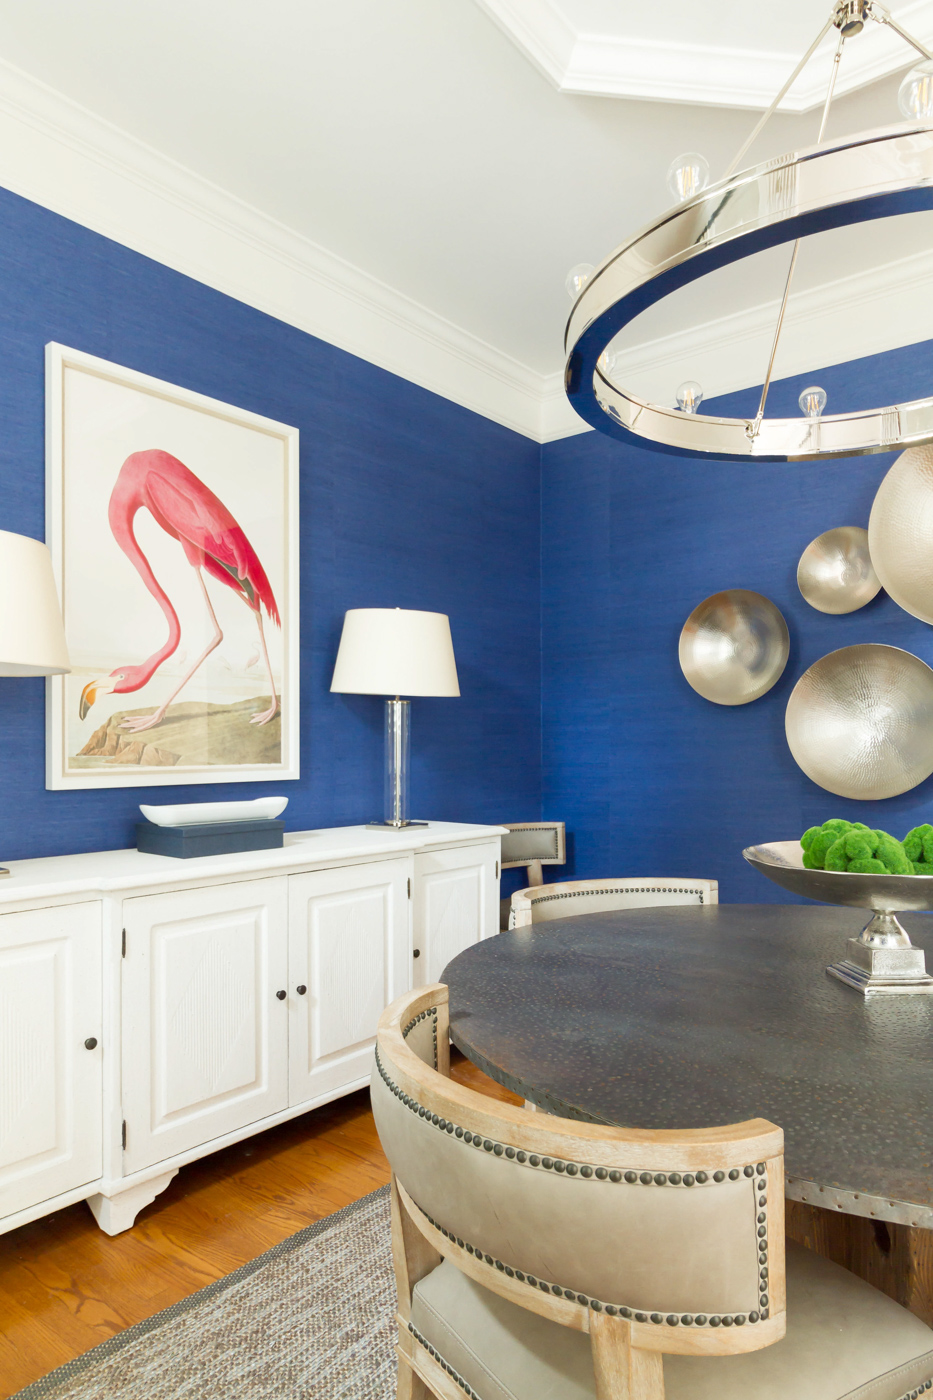 Eclectic Home Tour - love the blue wallpaper in this neutral dining room and the pink flamingo art #blue #bluewallpaper #diningroom #diningroomdecor #flamingo